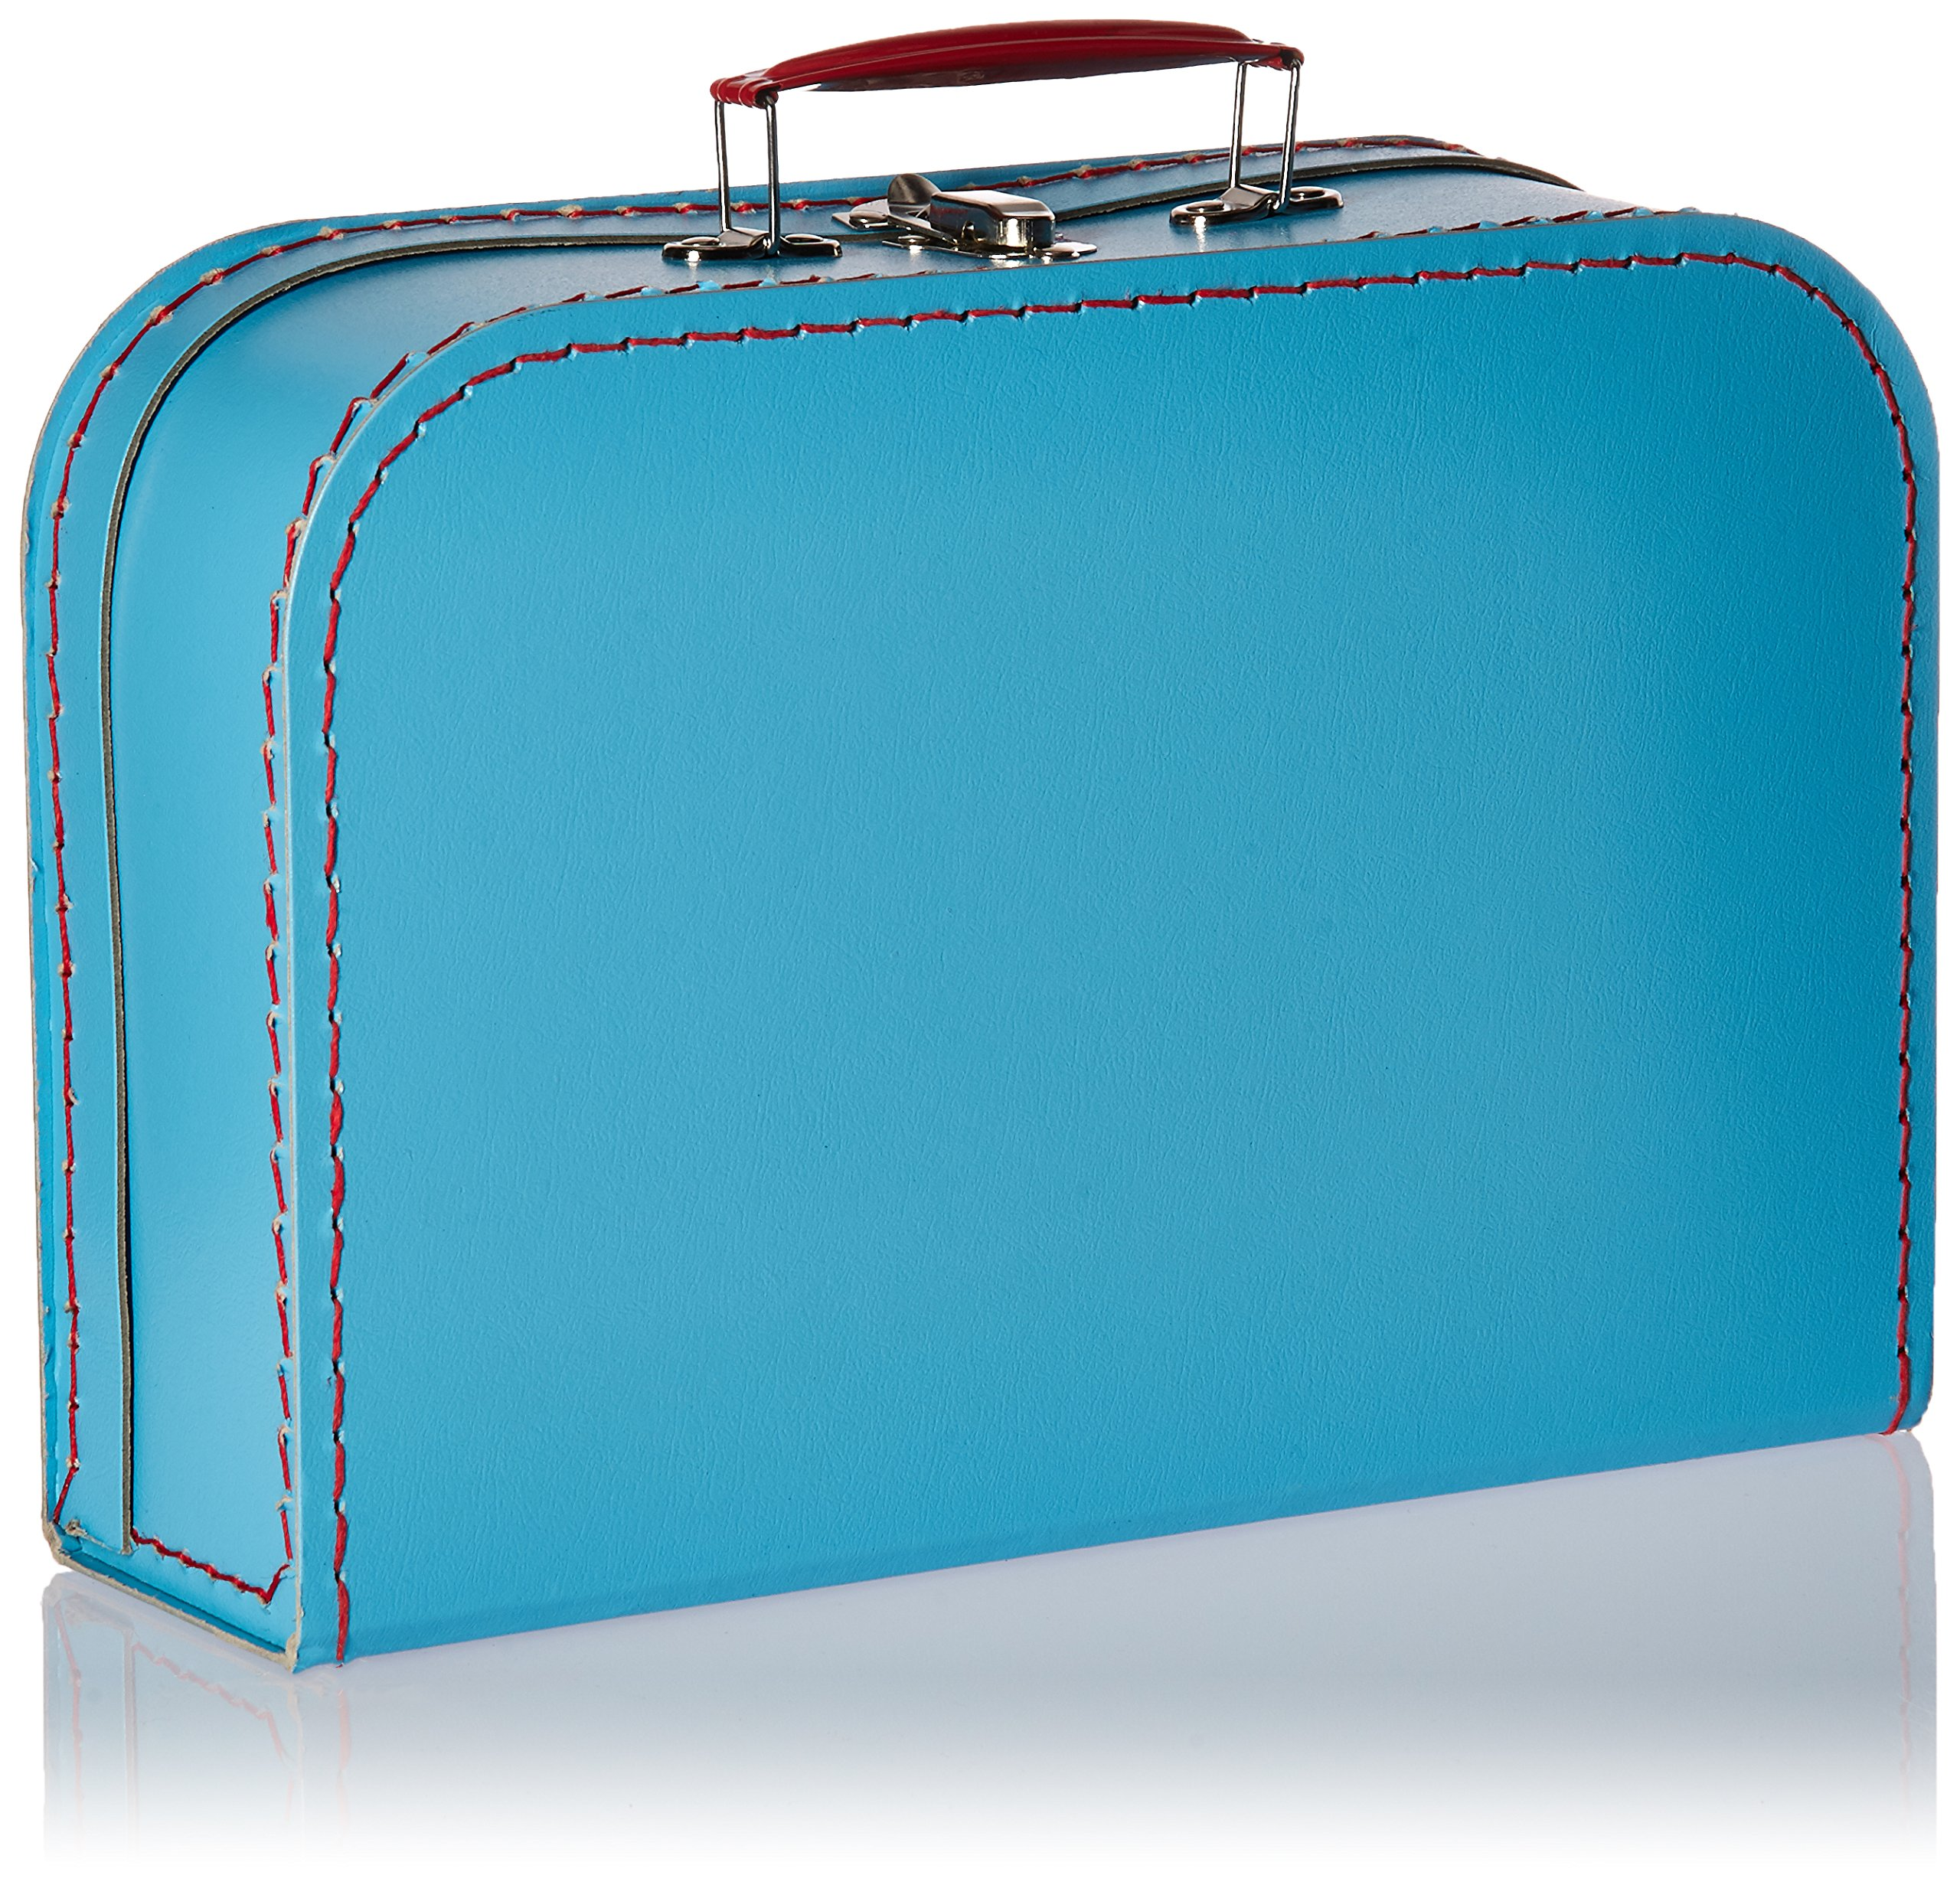 Cargo Cool Euro Suitcases, Soft Blue, Set of 3 by cargo (Image #3)